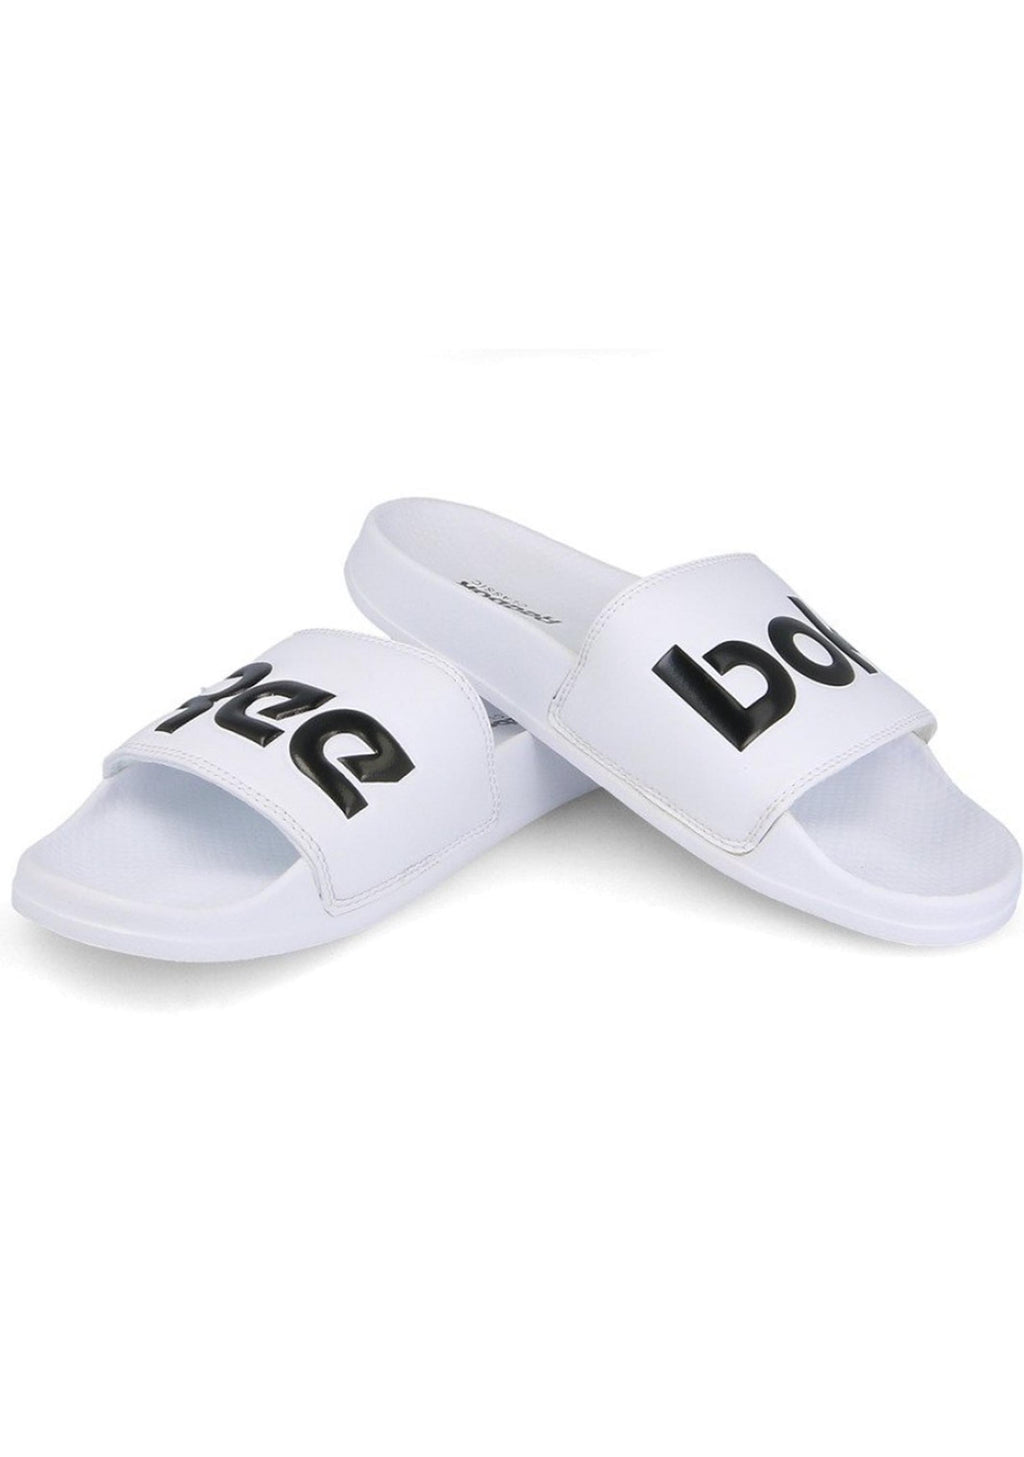 REEBOK WHITE CLASSIC SLIDES UNISEX WITH FREE 650ML WATER BOTTLE <br> CN0736